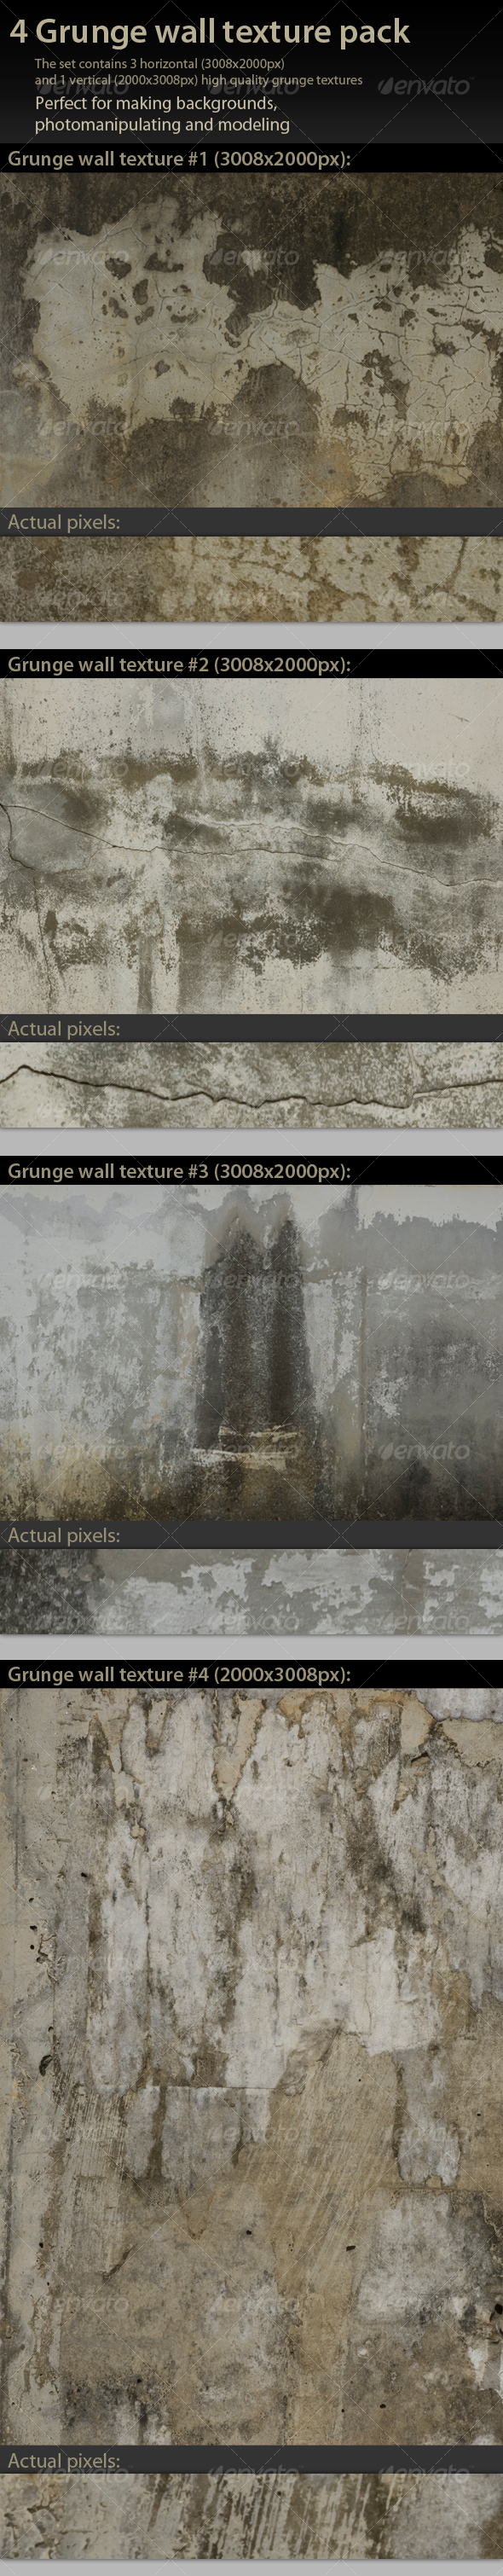 4 Grunge Wall Textures Pack - Industrial / Grunge Textures